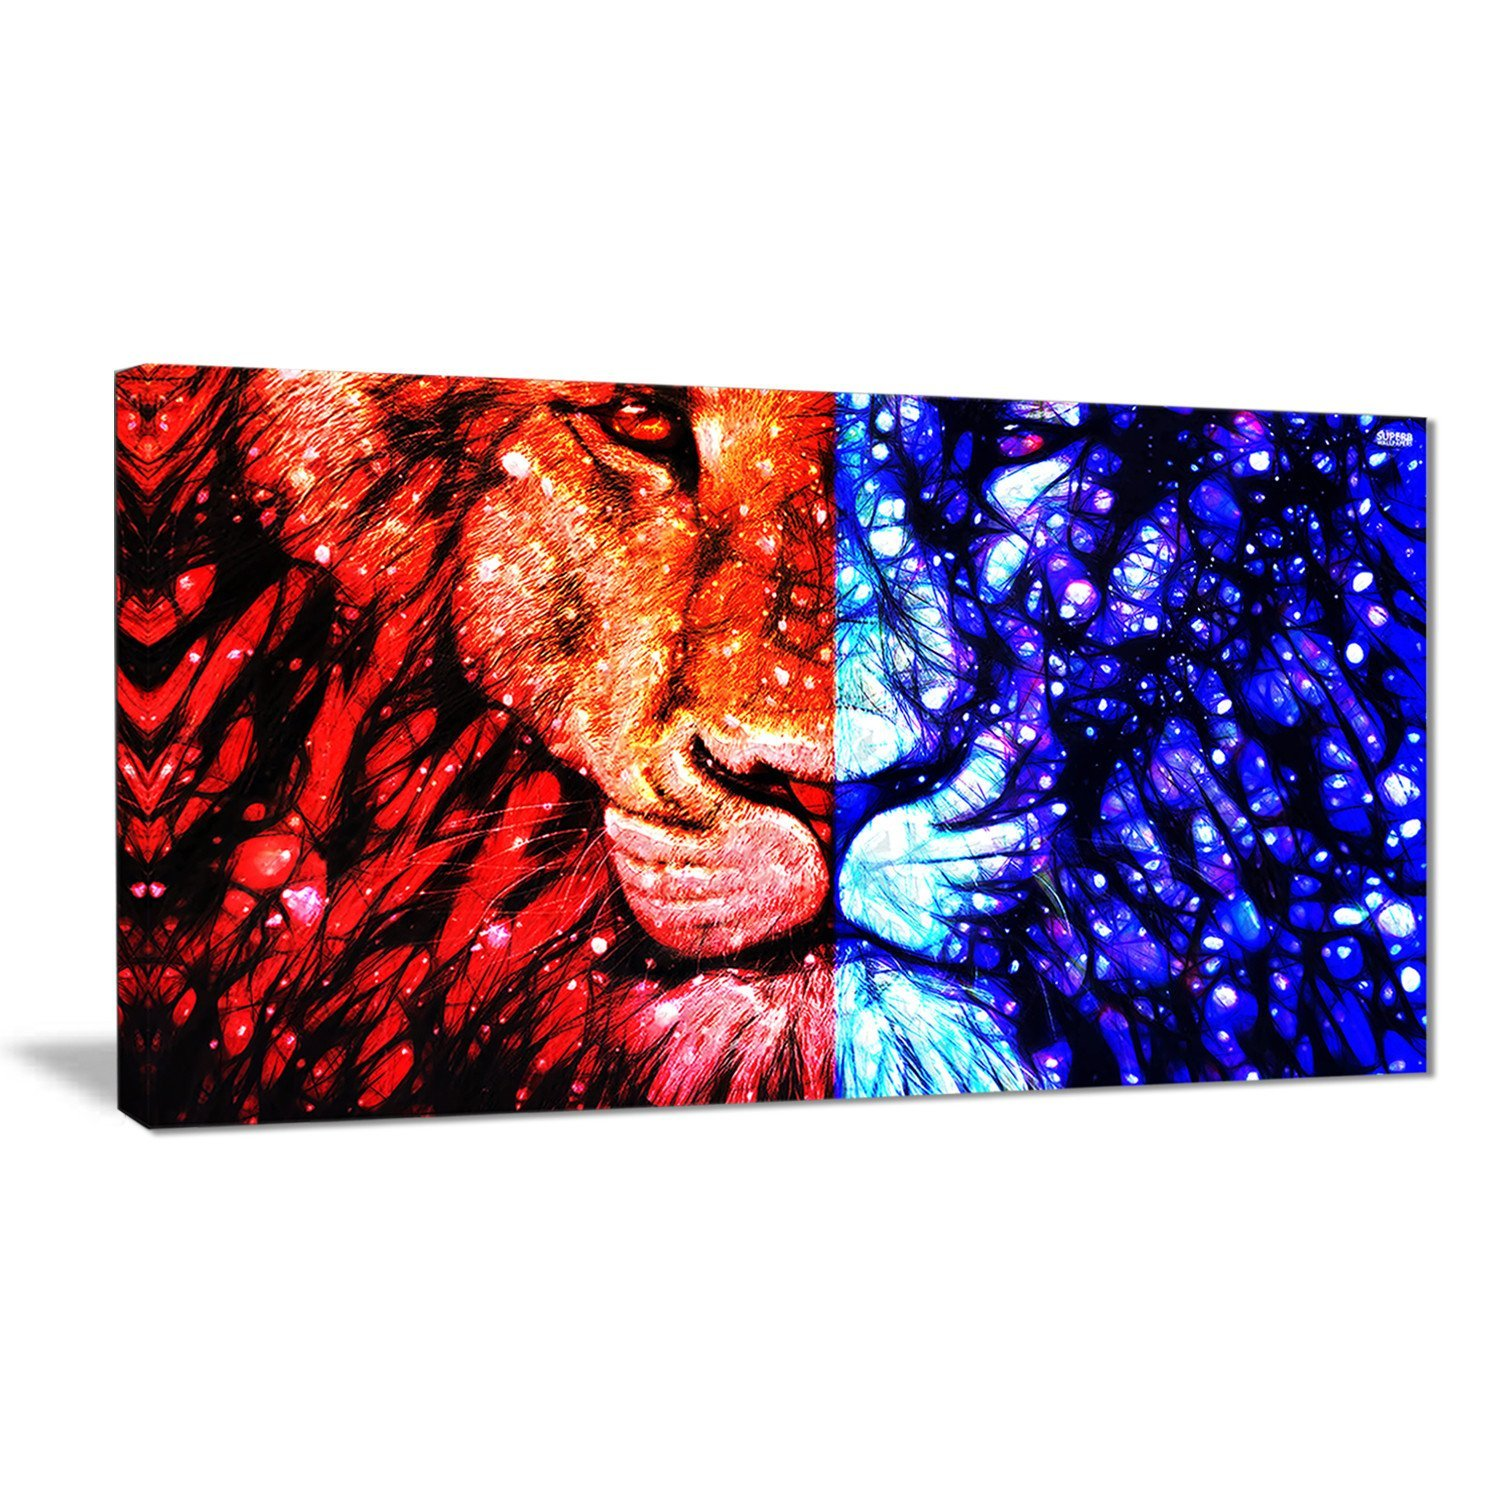 Digital art PT2401-32-16 King of The Jungle Lion Canvas Art.